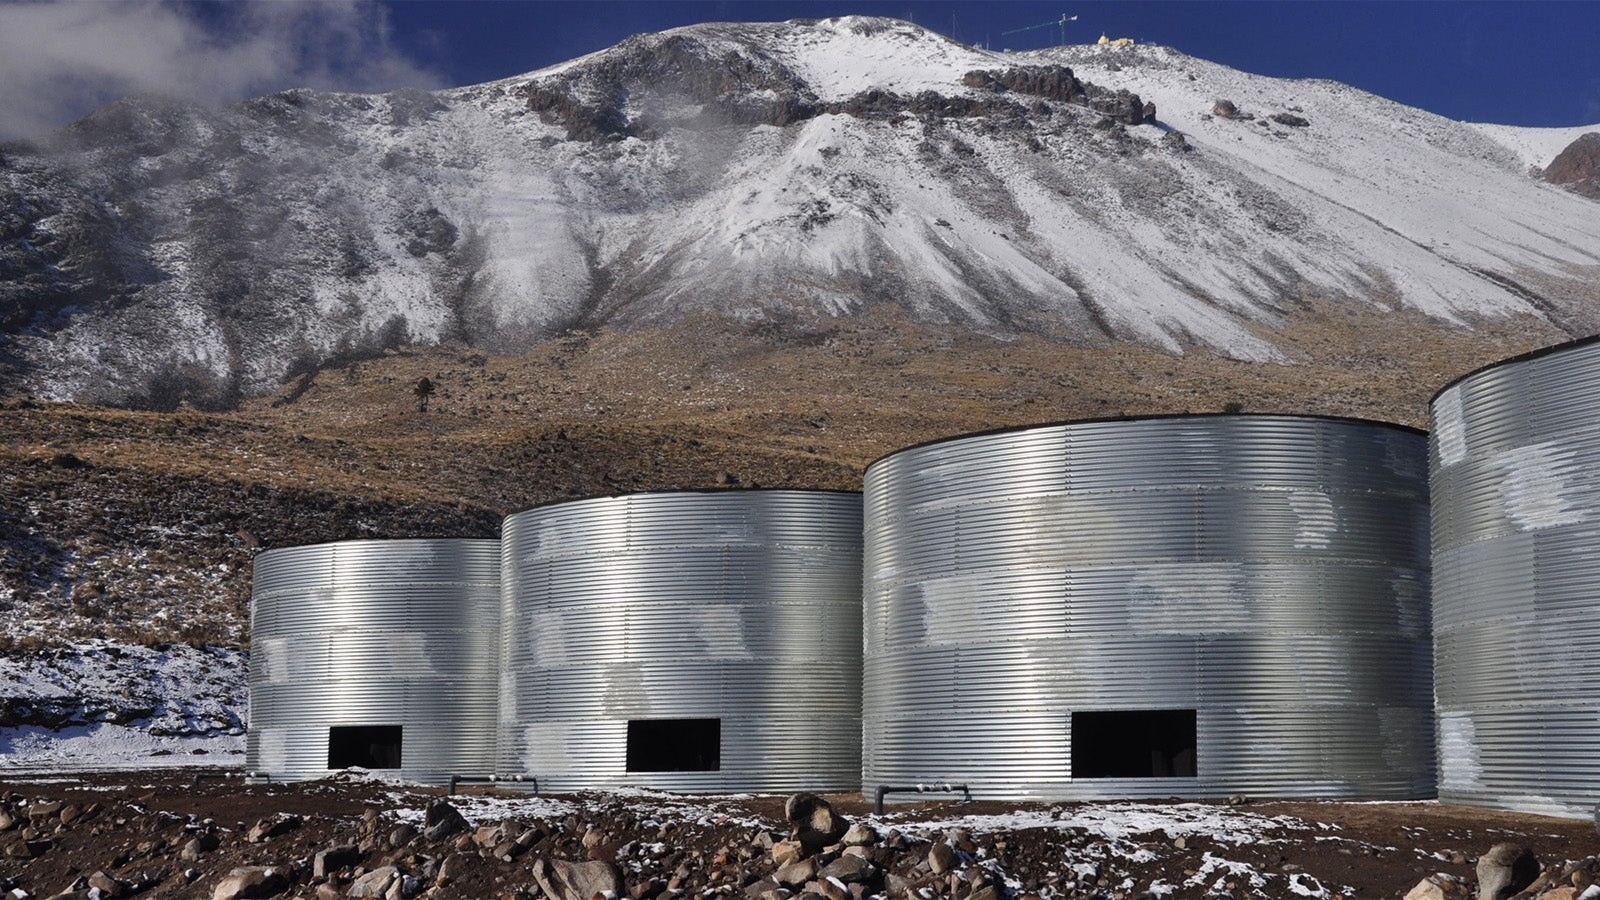 These Huge Beer Keg Tanks Will Study Cosmic Explosions